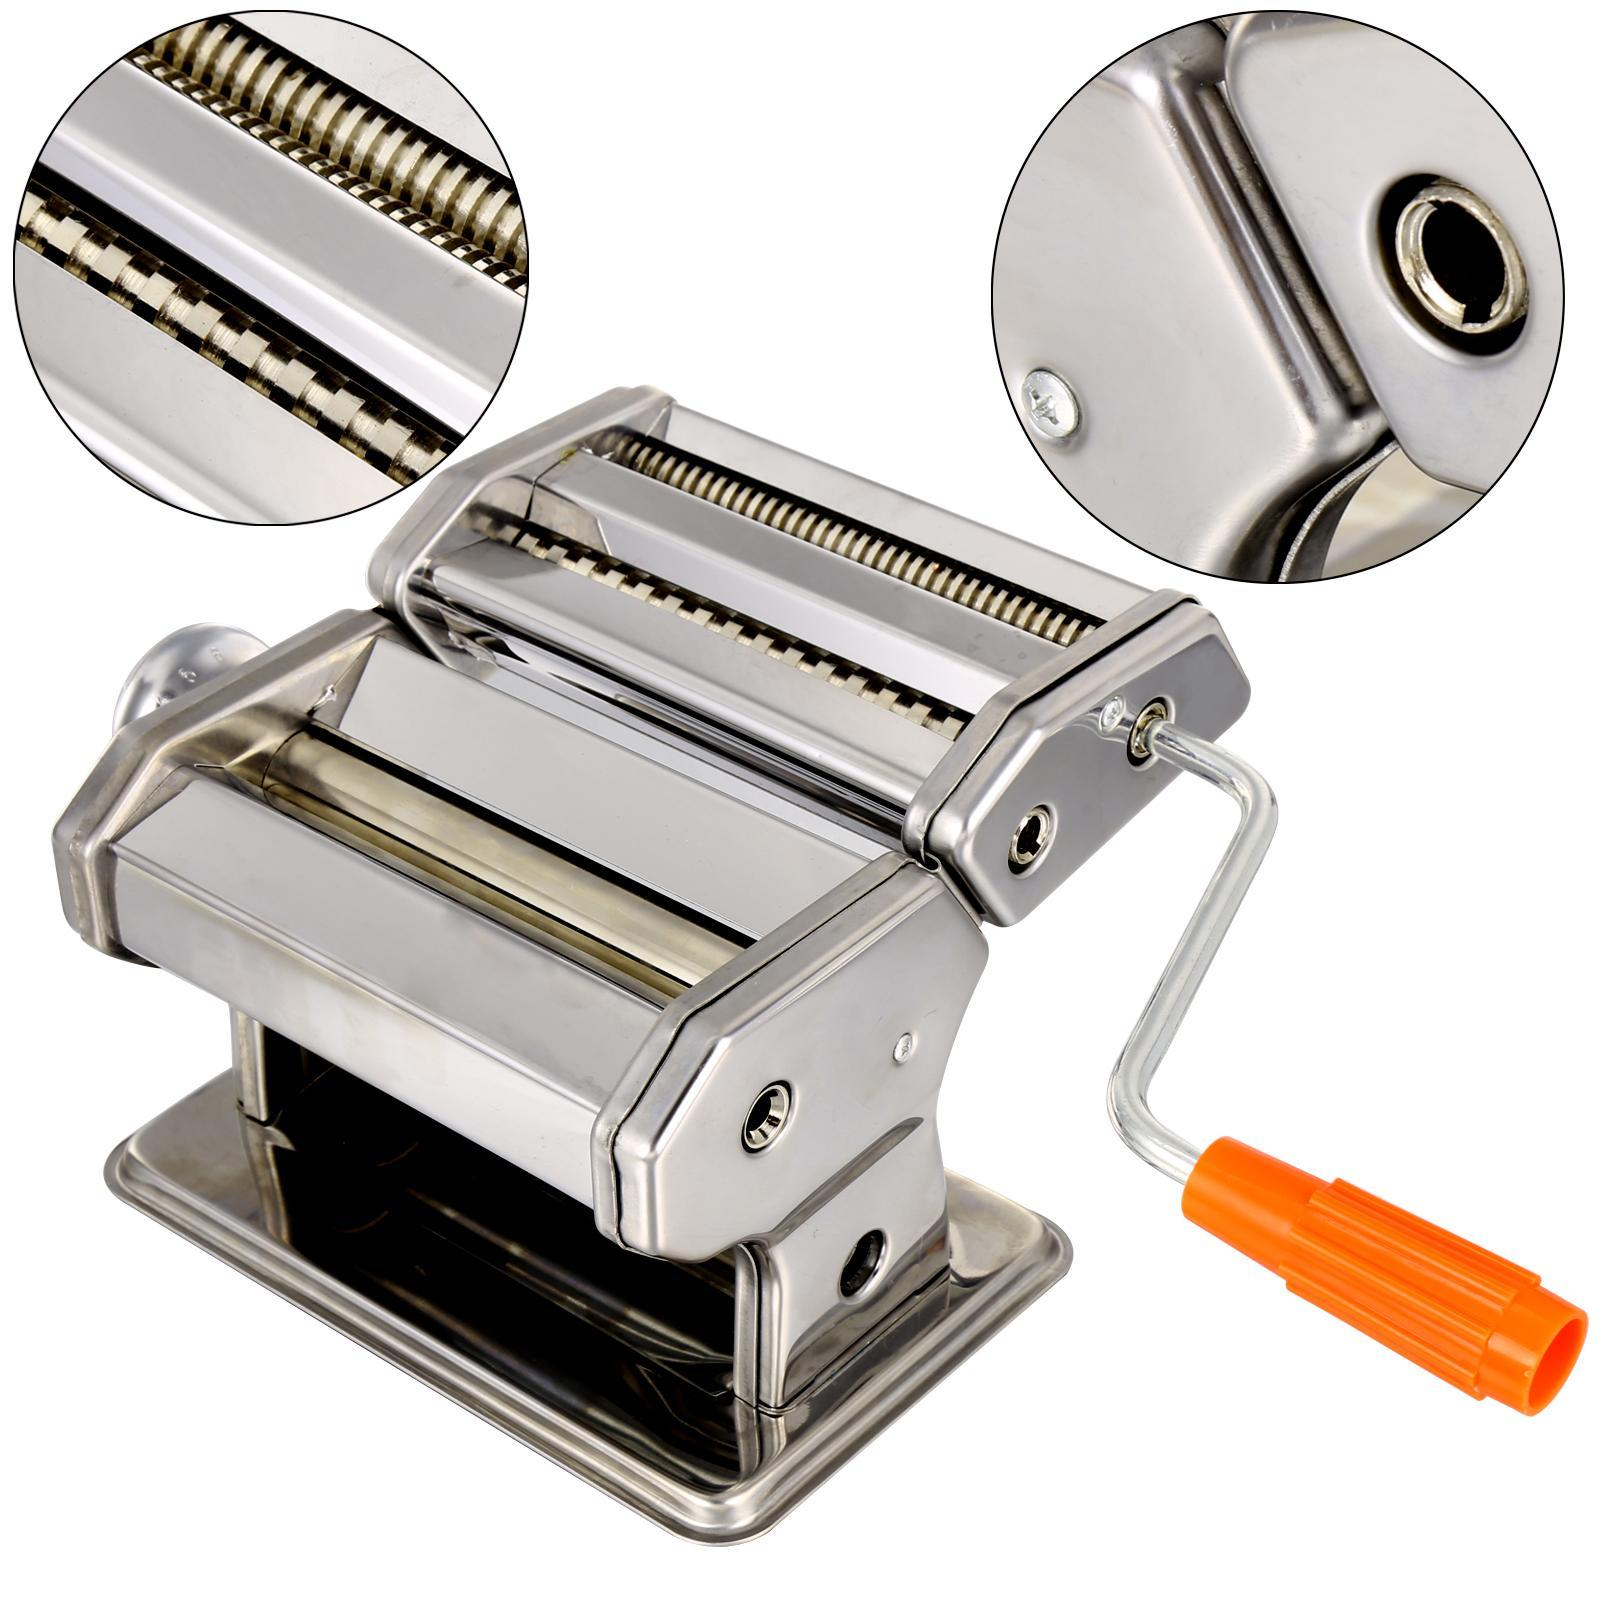 Home Kitchen Removable Stainless Steel Pasta Maker Noodle Making Dough  Machine- 2 Blades